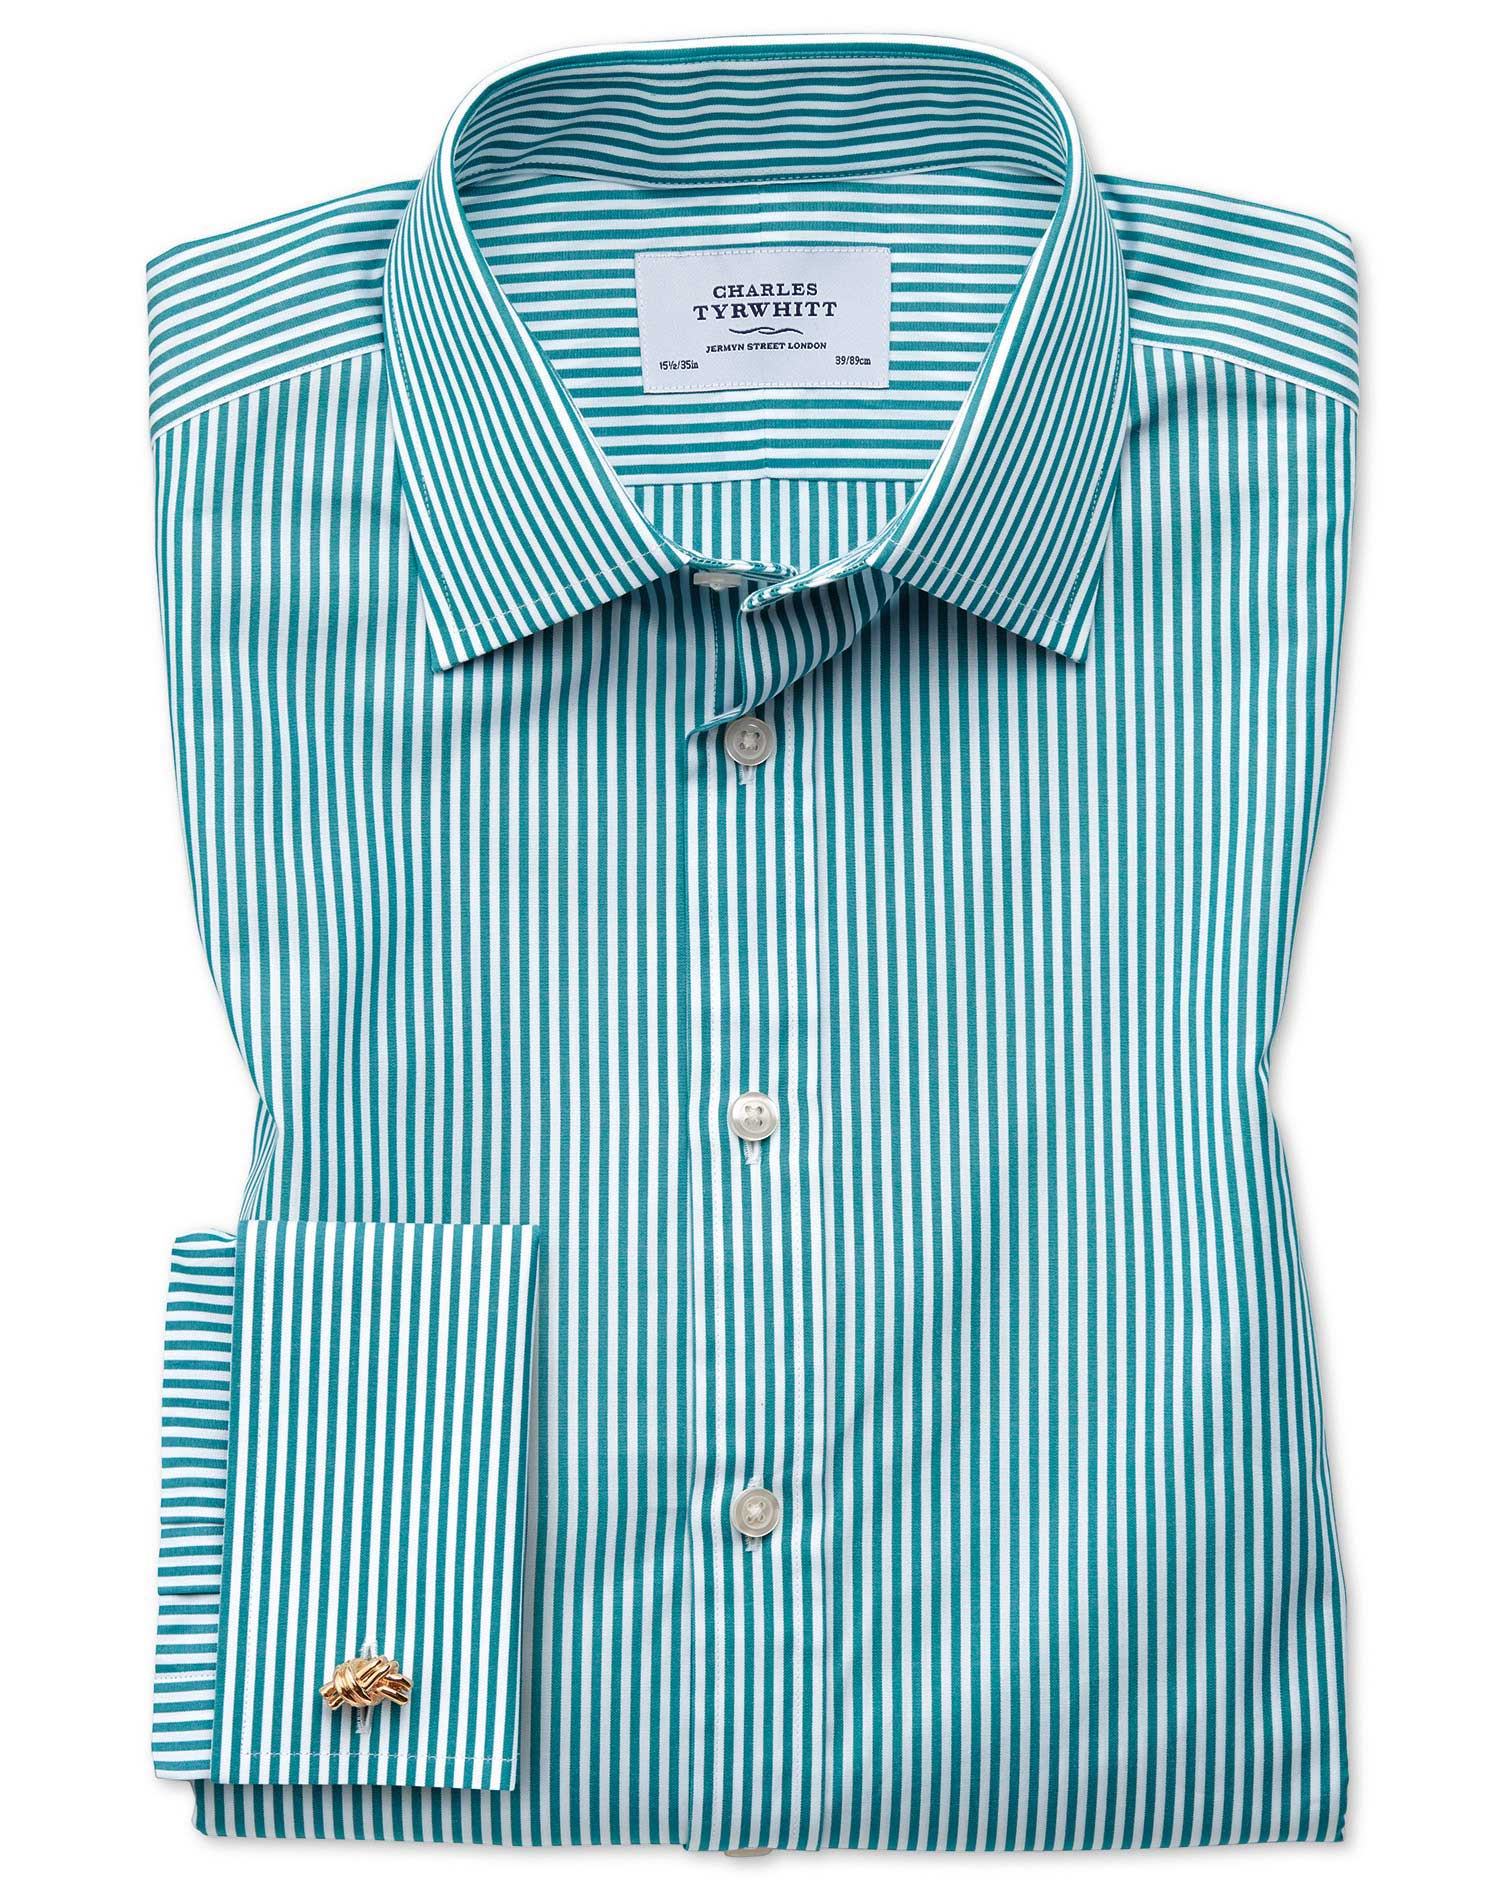 Slim Fit Bengal Stripe Green Cotton Formal Shirt Double Cuff Size 16.5/34 by Charles Tyrwhitt